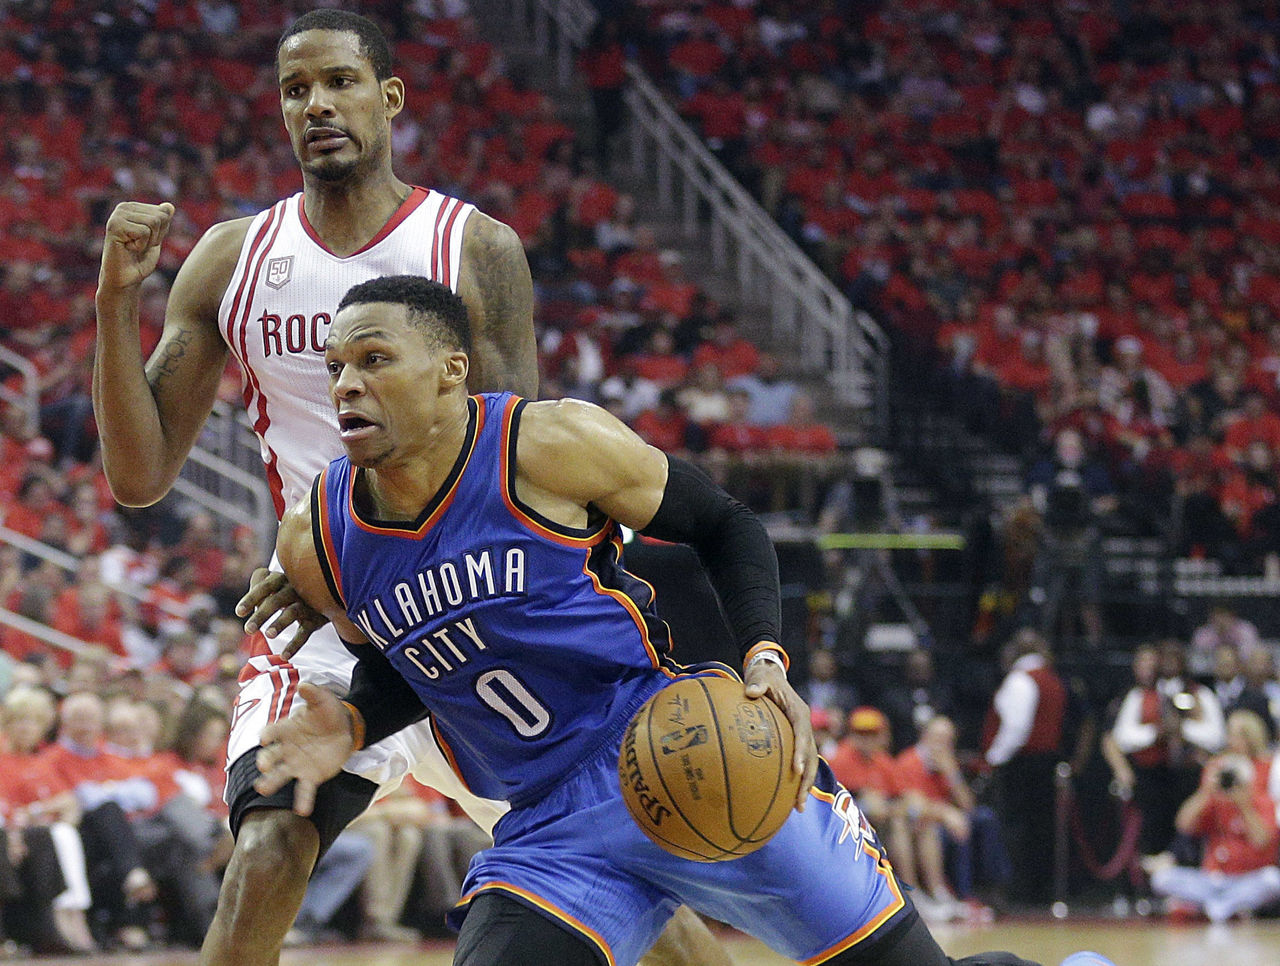 Cropped 2017 04 26t014000z 1606572550 nocid rtrmadp 3 nba playoffs oklahoma city thunder at houston rockets